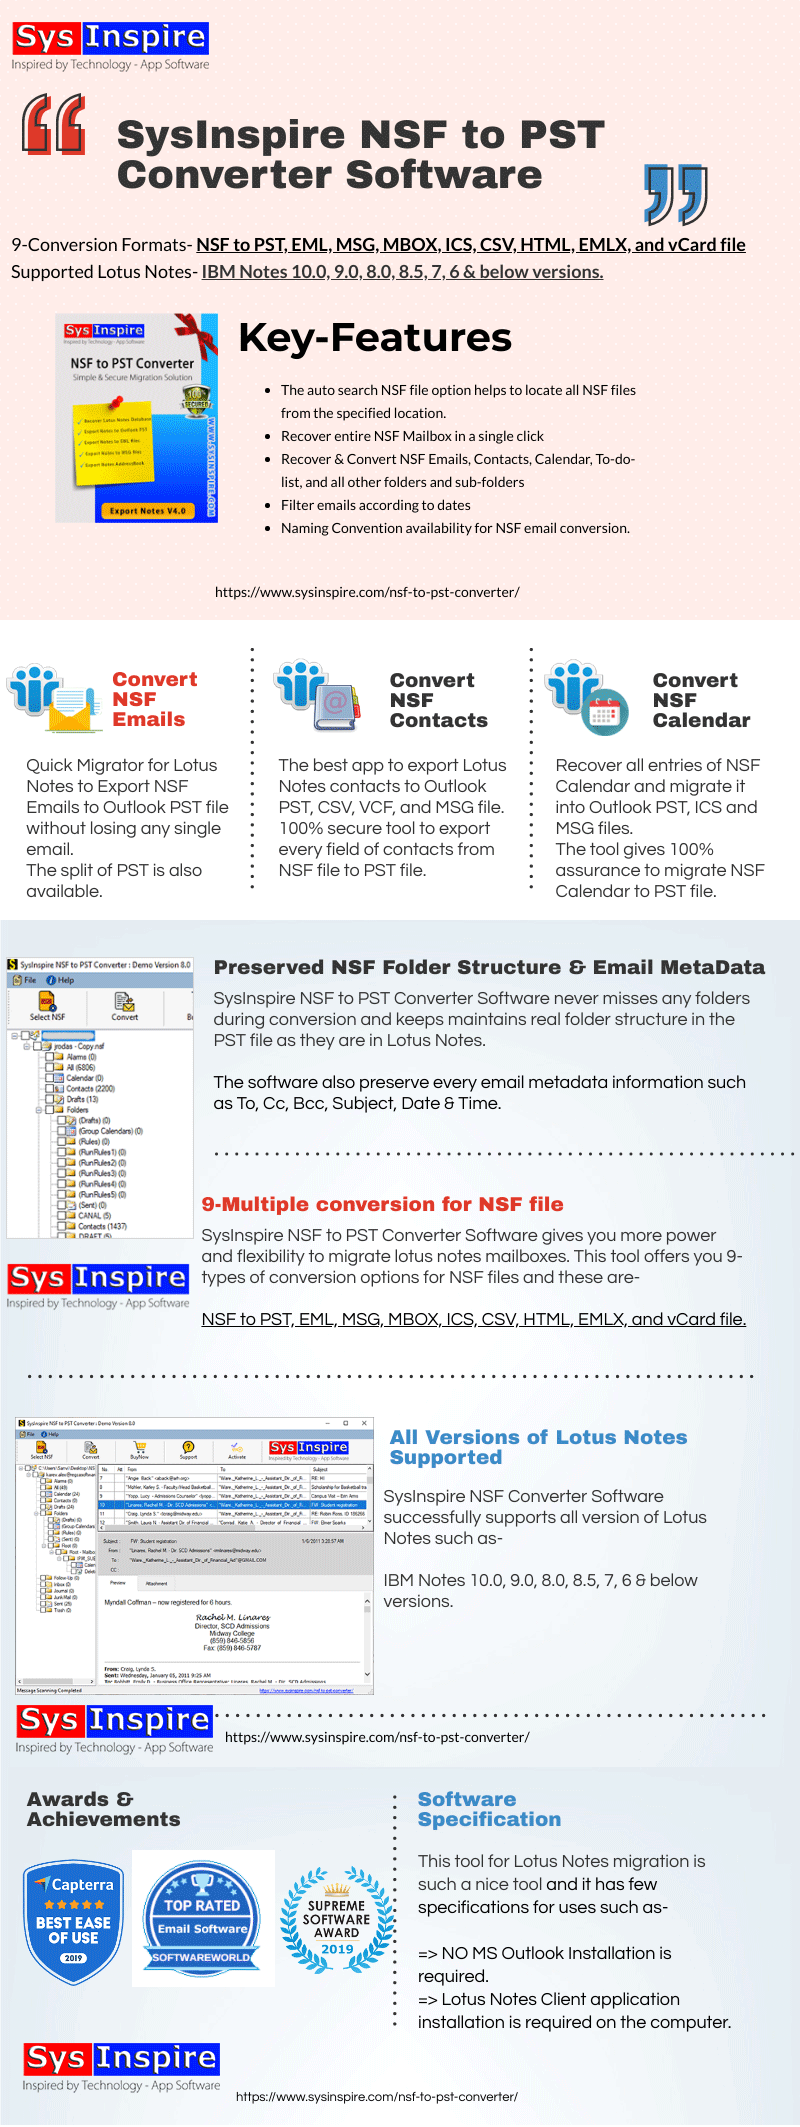 https://www.sysinspire.com/infographics/nsf/sysinspire-nsf-to-pst.png